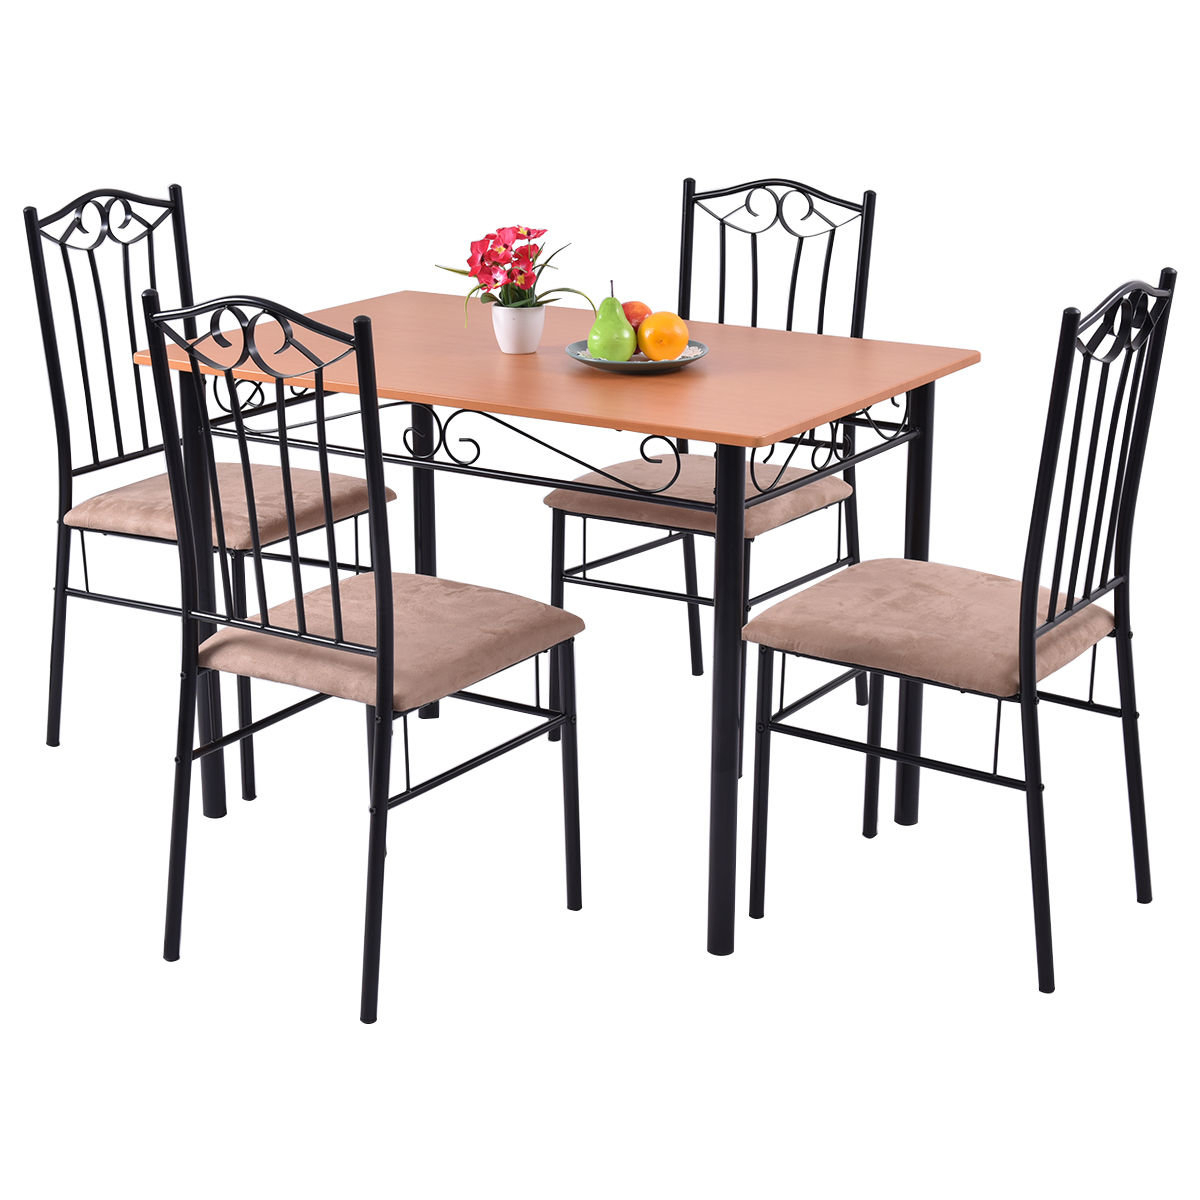 Rossi 5 Piece Dining Set In Most Recent Casiano 5 Piece Dining Sets (Image 16 of 20)